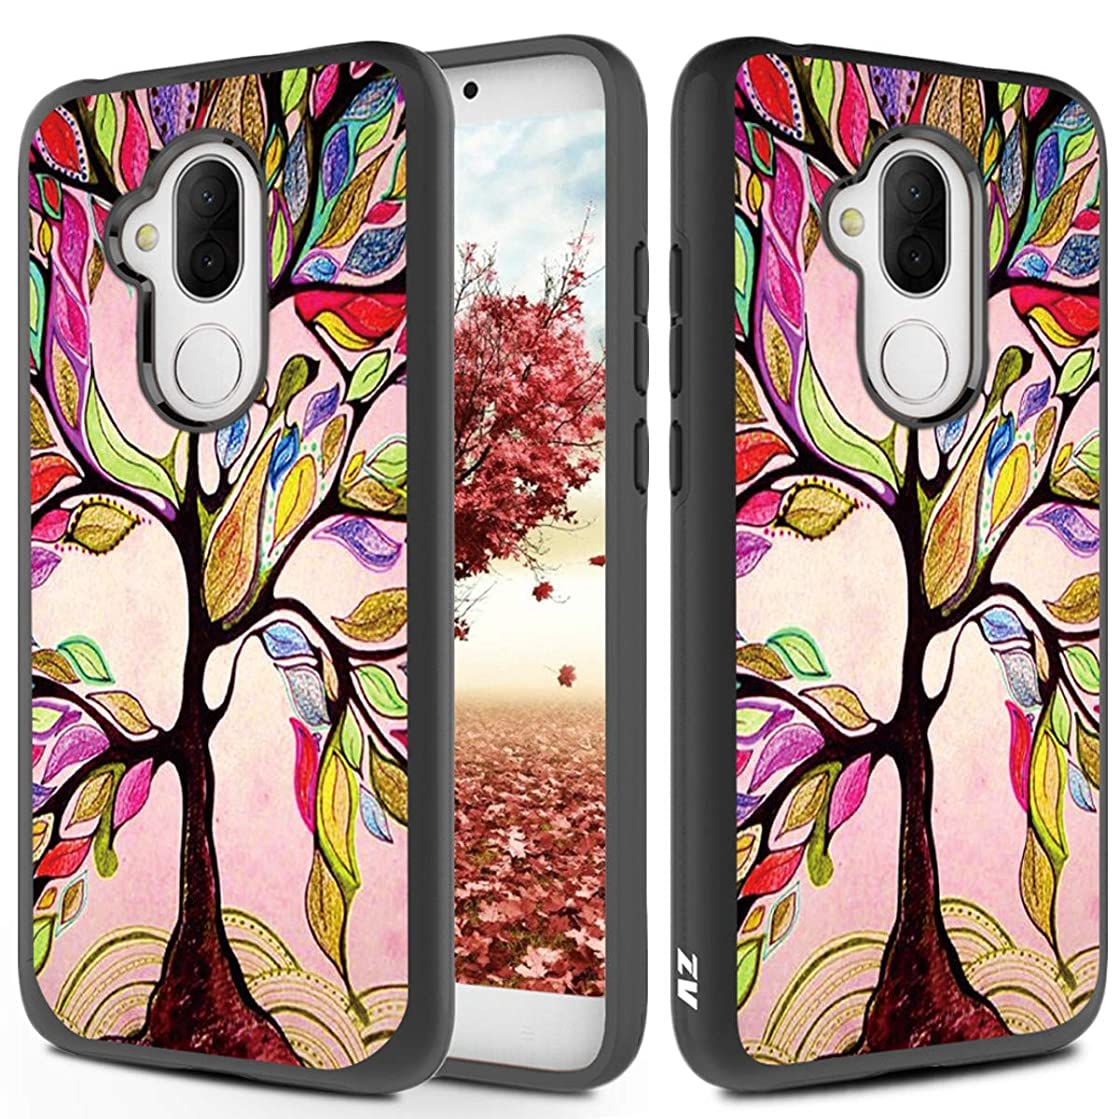 Phonelicious Alcatel 7 Case, Tmobile Revvl 2 Plus Phone Cover Dual Layer Slim Hybrid Rugged Protective with Screen Protector and Stylus Compatible 6062w (Tree of Life)